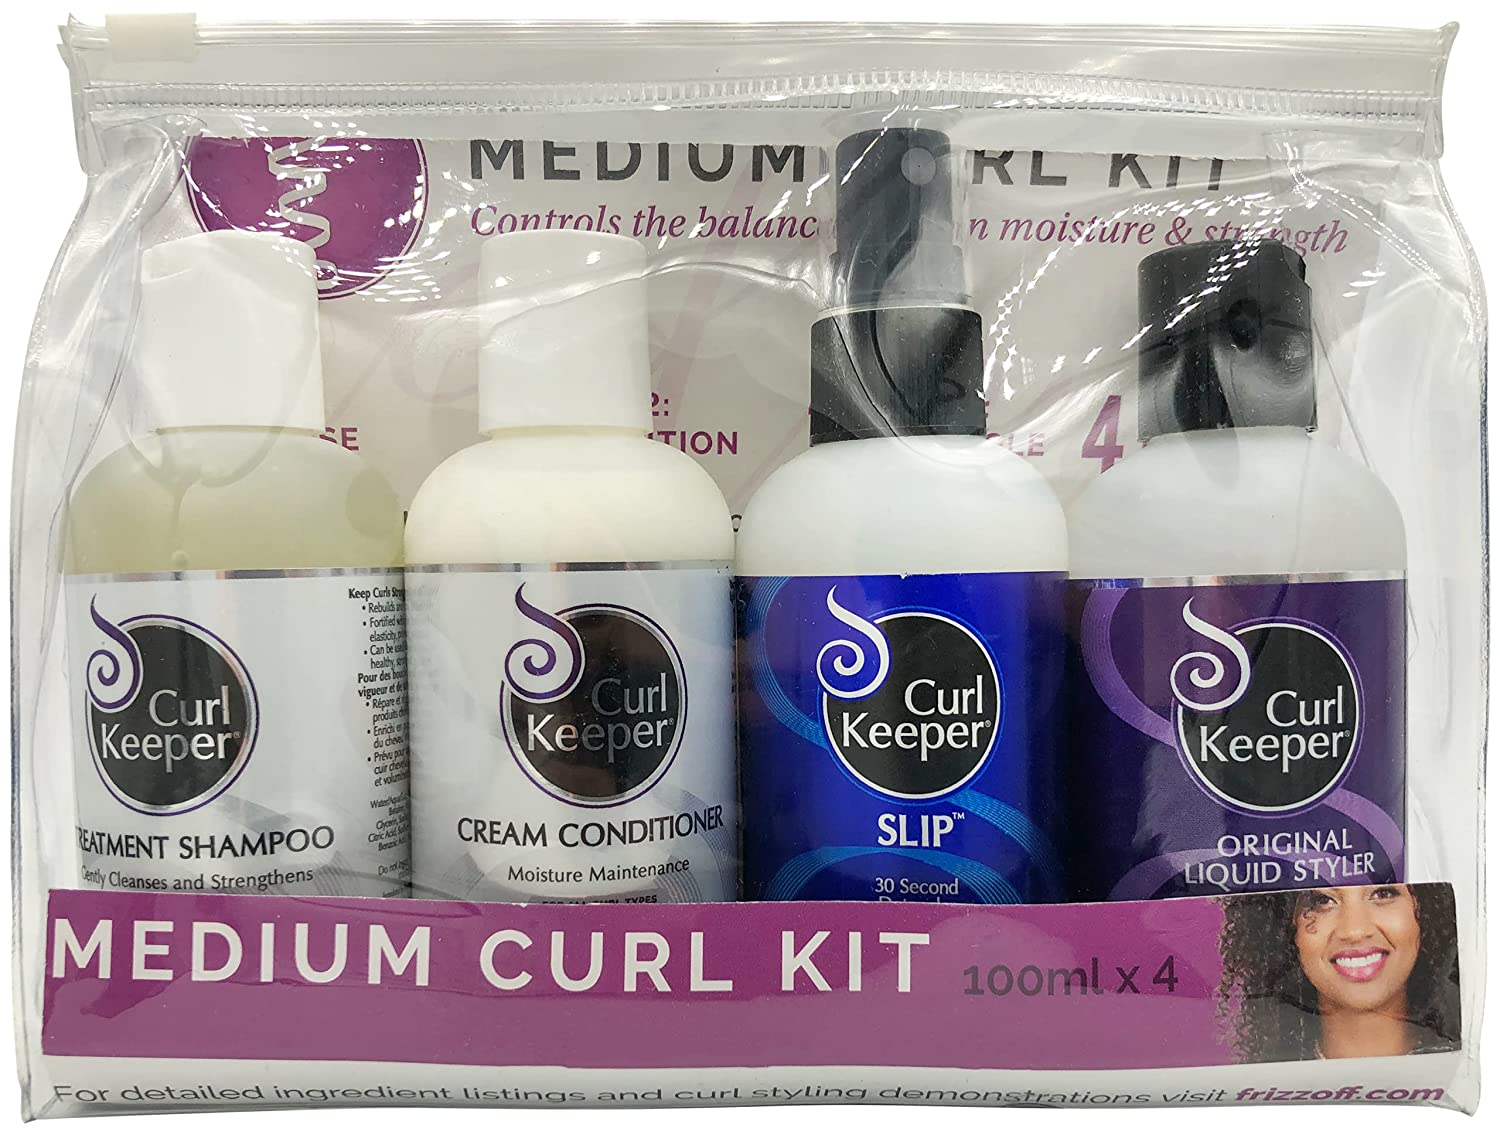 CURLY HAIR Manufacturer regenerated product Long Beach Mall SOLUTIONS - Medium Curl Oz Starter 3.4 Kit